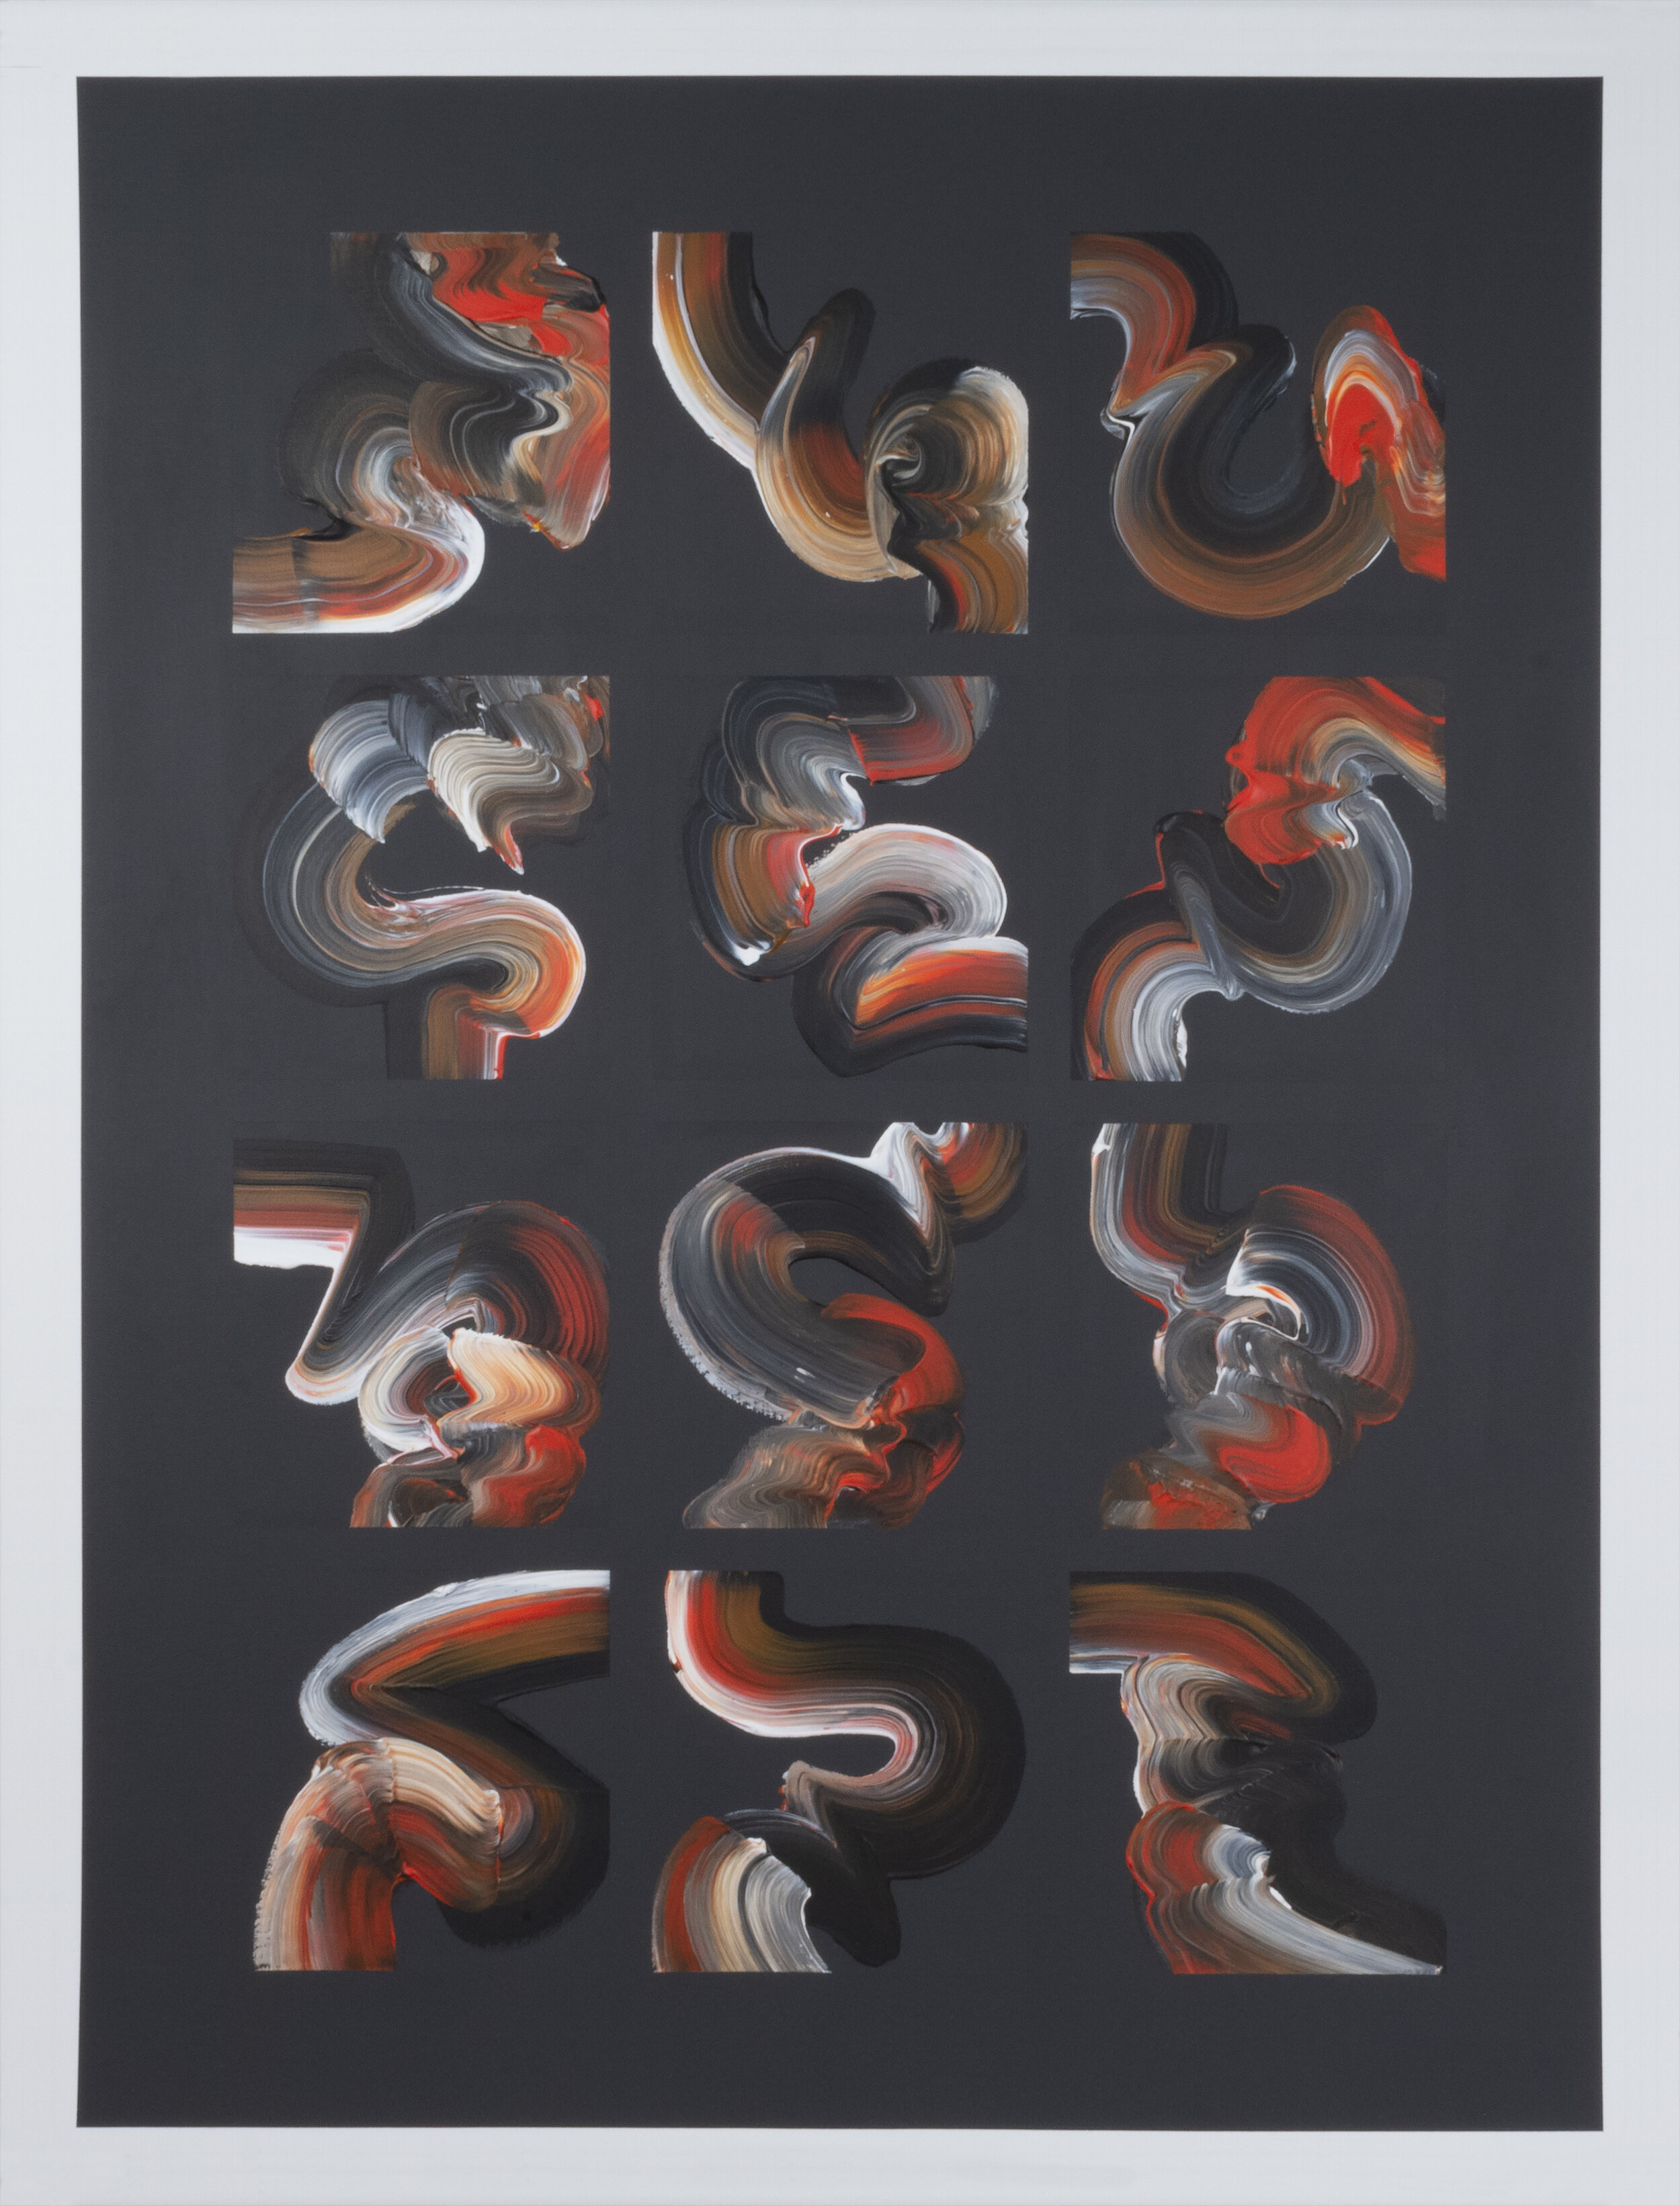 """Turbulence #1 , 2015, Acrylic on Canvas, 49.5"""" x 37.5"""".  Twelve calligraphic images in black, orange and white on a dark grey background."""